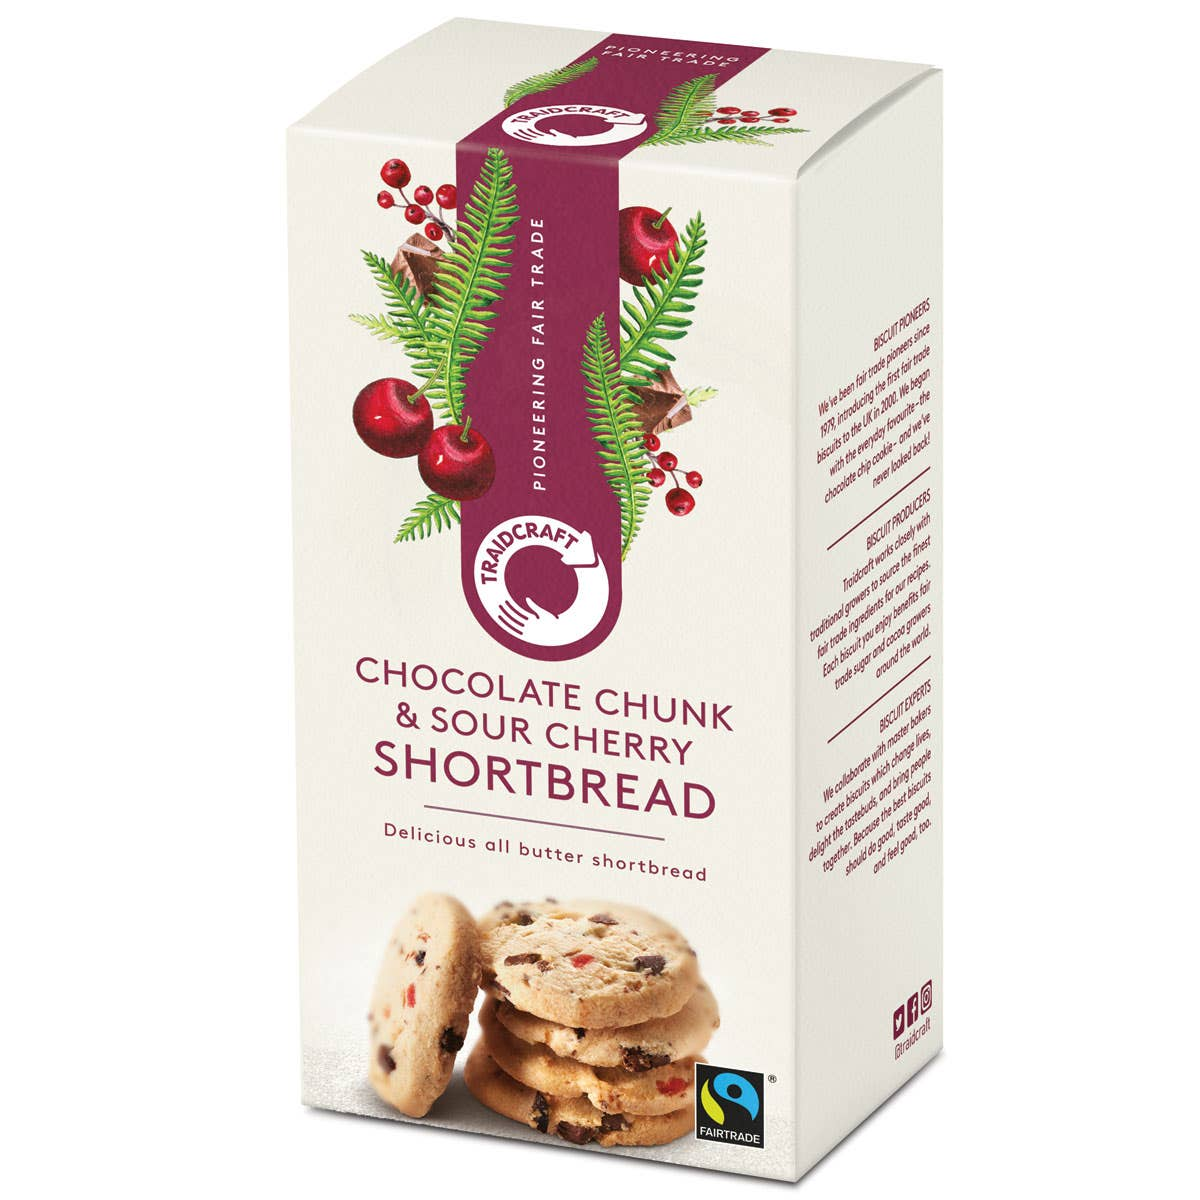 Traidcraft Chocolate Chunk & Sour Cherry Shortbread Rounds (8x160g) CASE